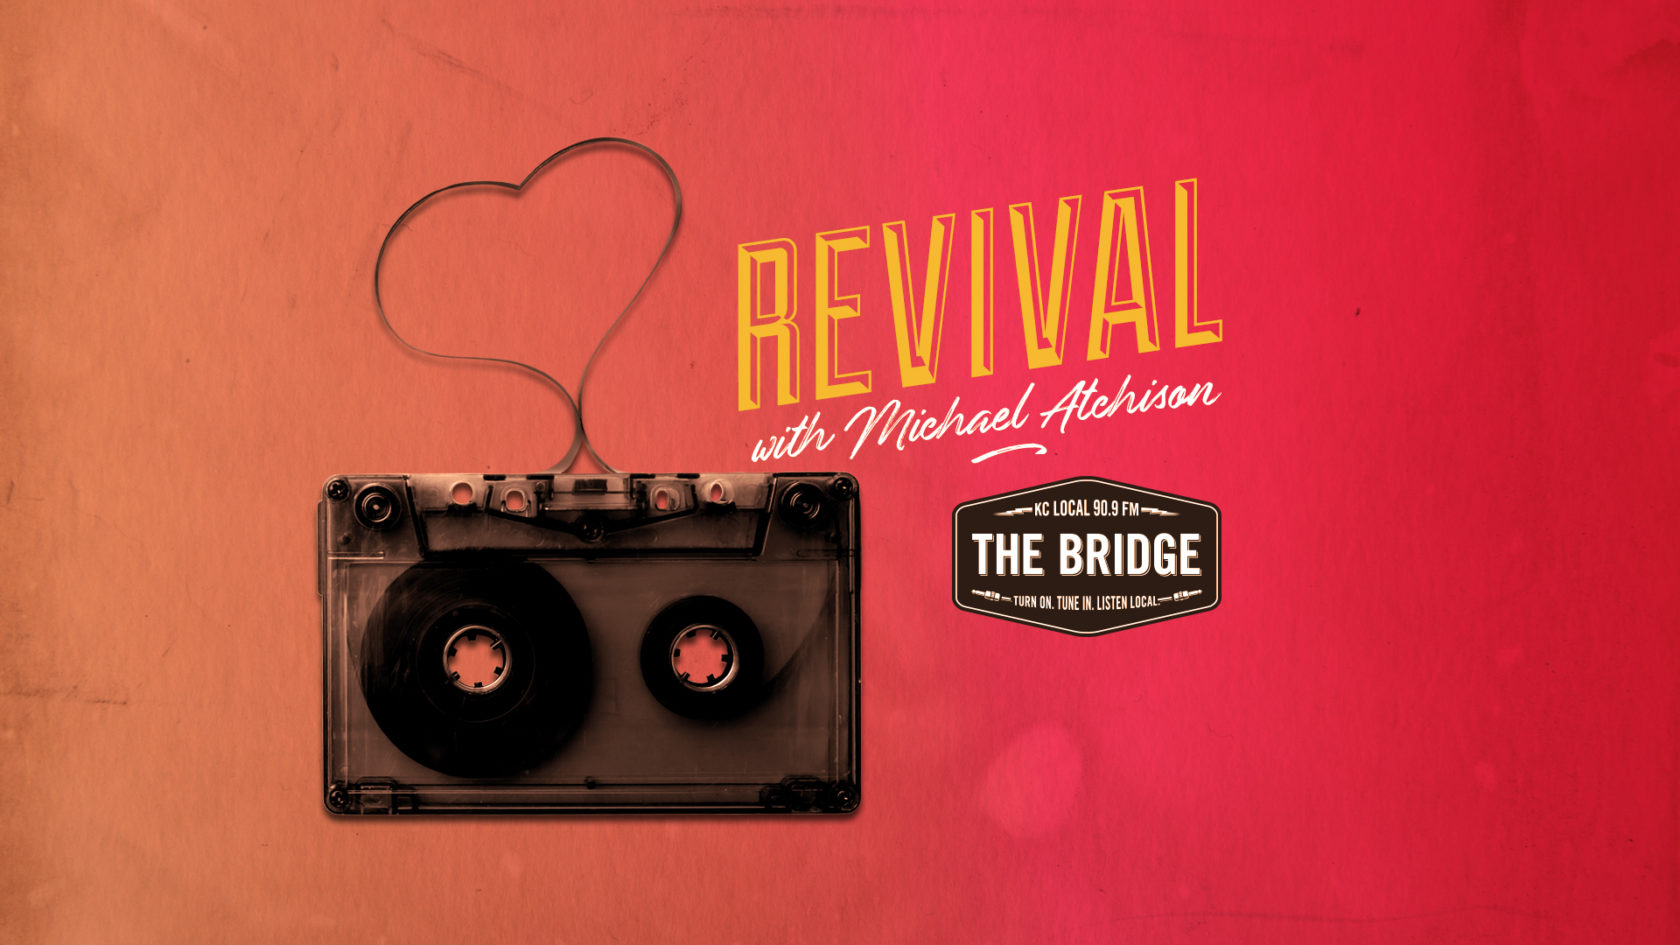 Revival with Michael Atchison